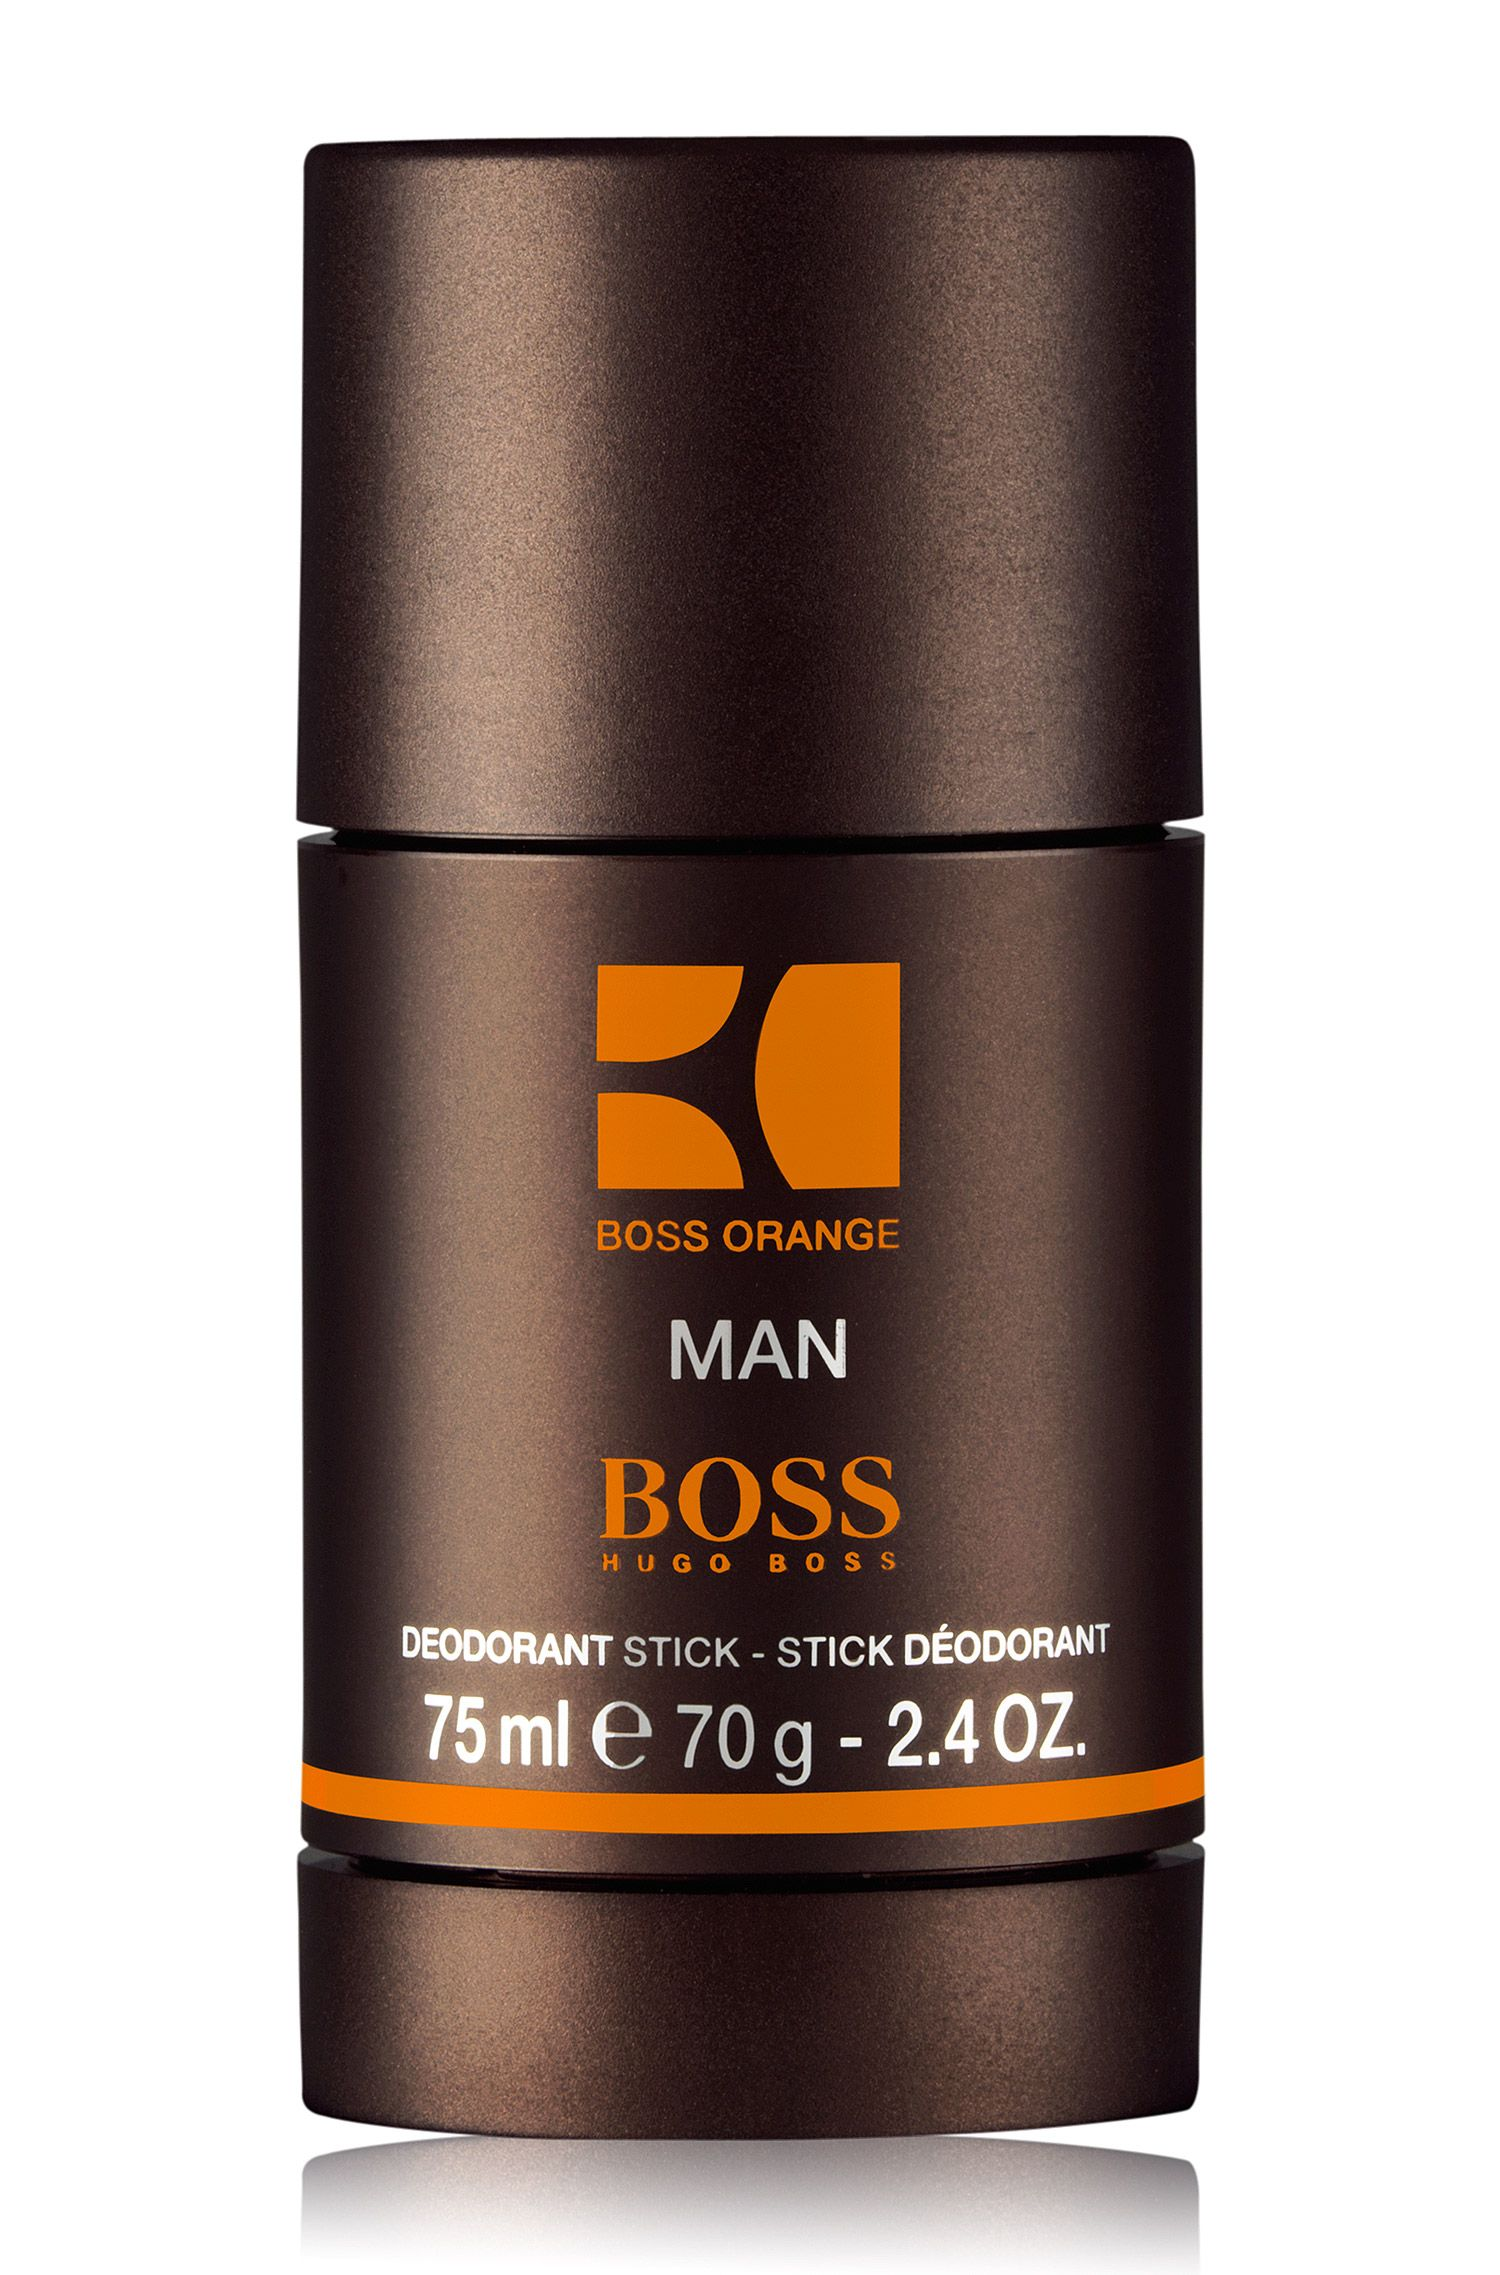 'BOSS Orange Man' Deodorant Stick